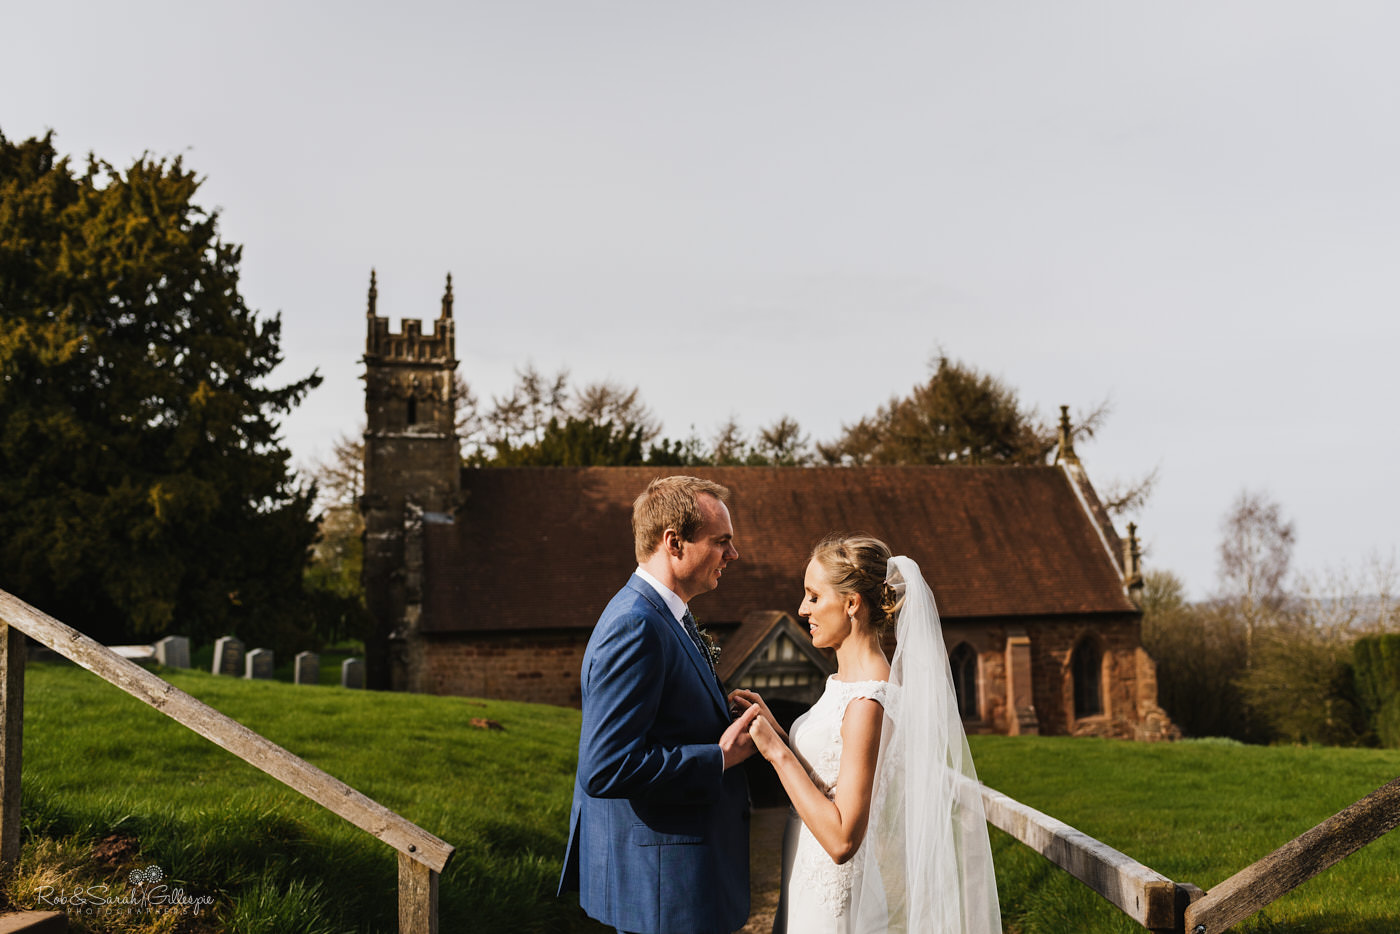 Wedding photography at St Kenelm's church & Swallows Nest Barn